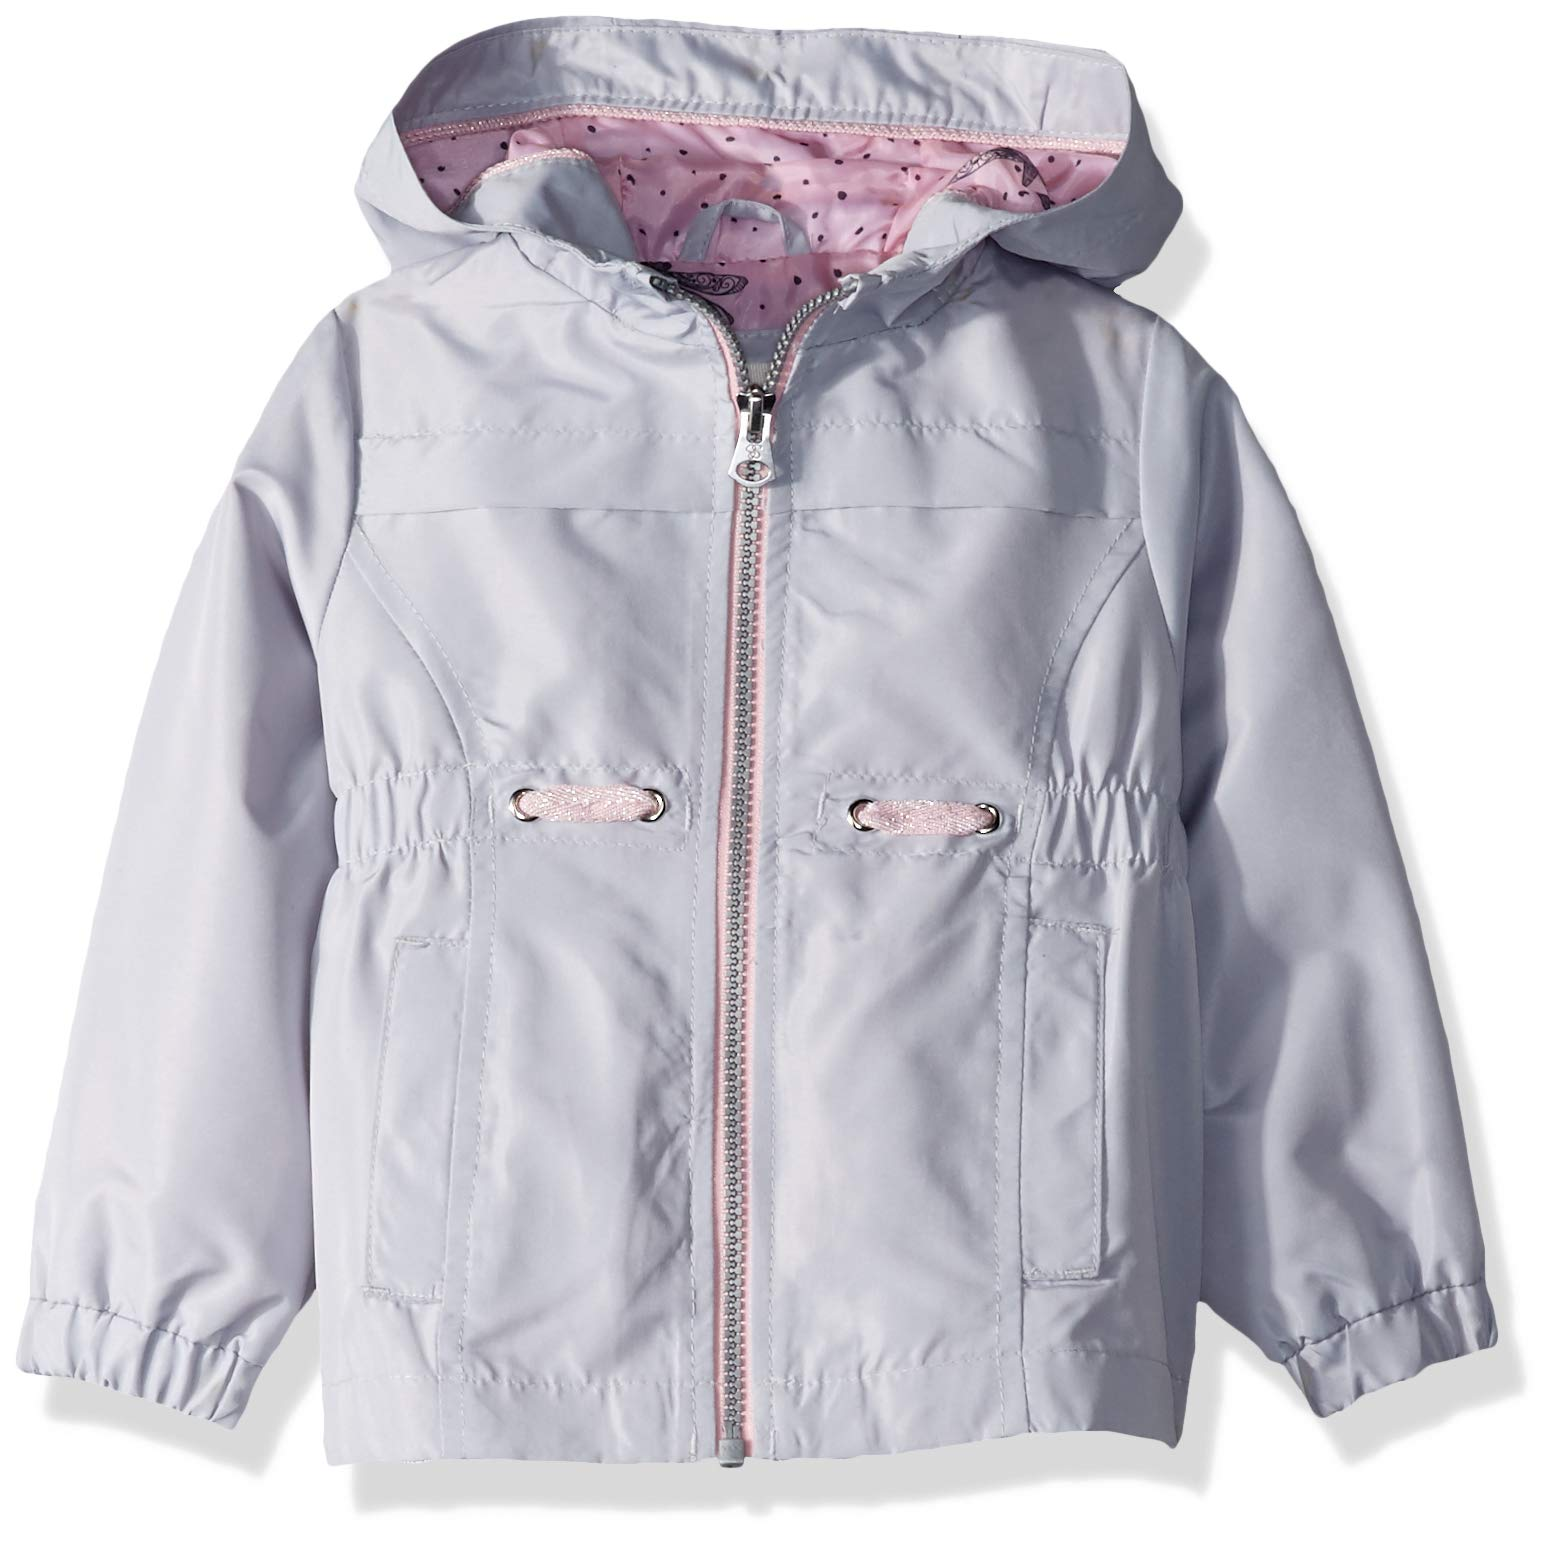 Jessica Simpson Girls' Toddler Lightweight Anorak Jacket with Jersey Lining, Silver surf Gray, 2T